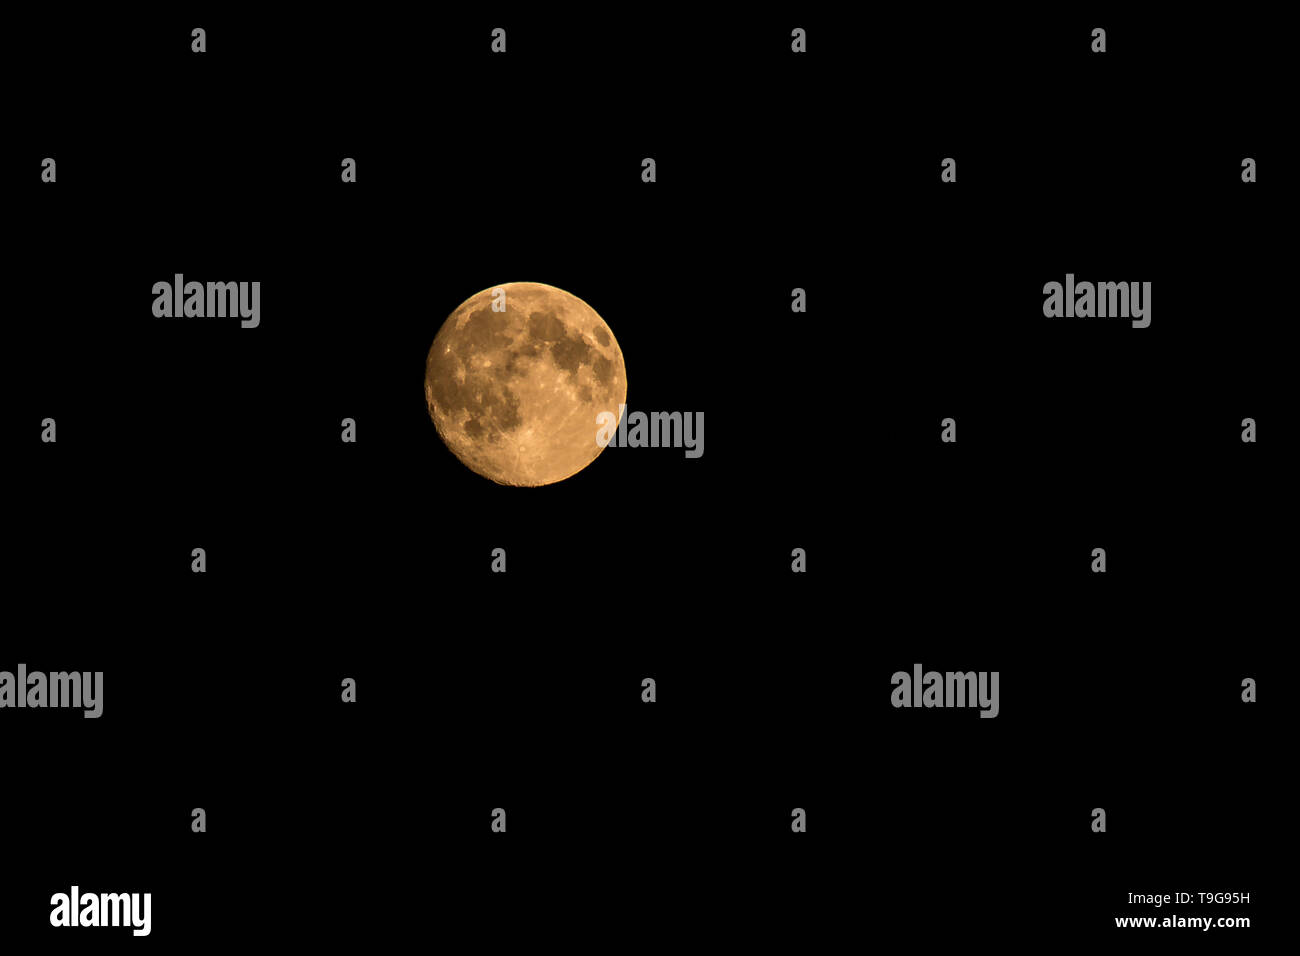 big round moon in the night sky - Stock Image